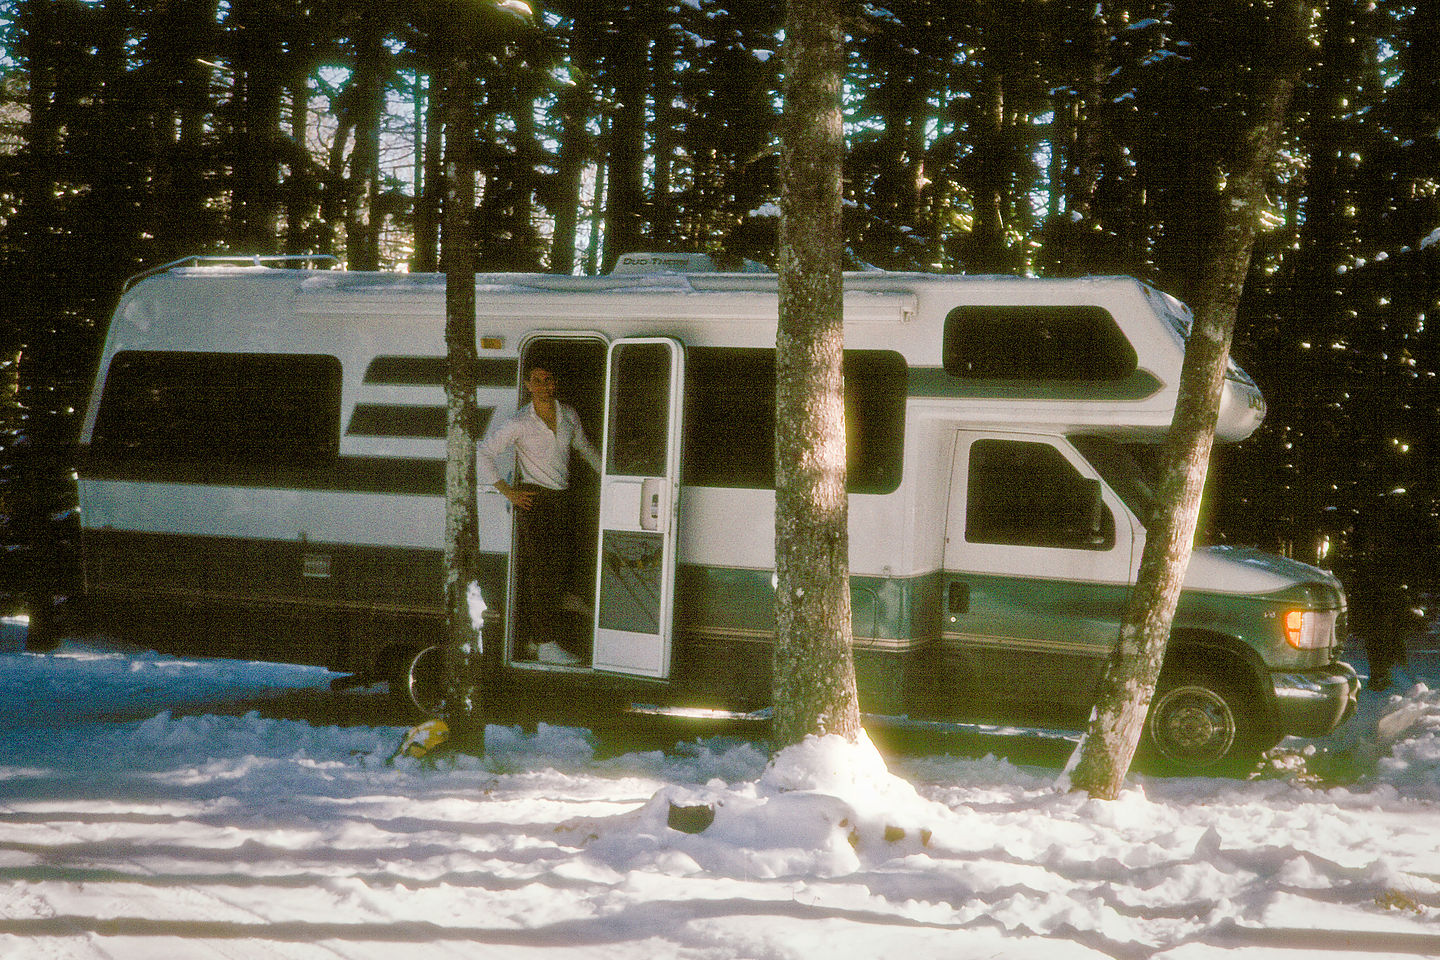 Herb with Lazy Daze in Maine winter